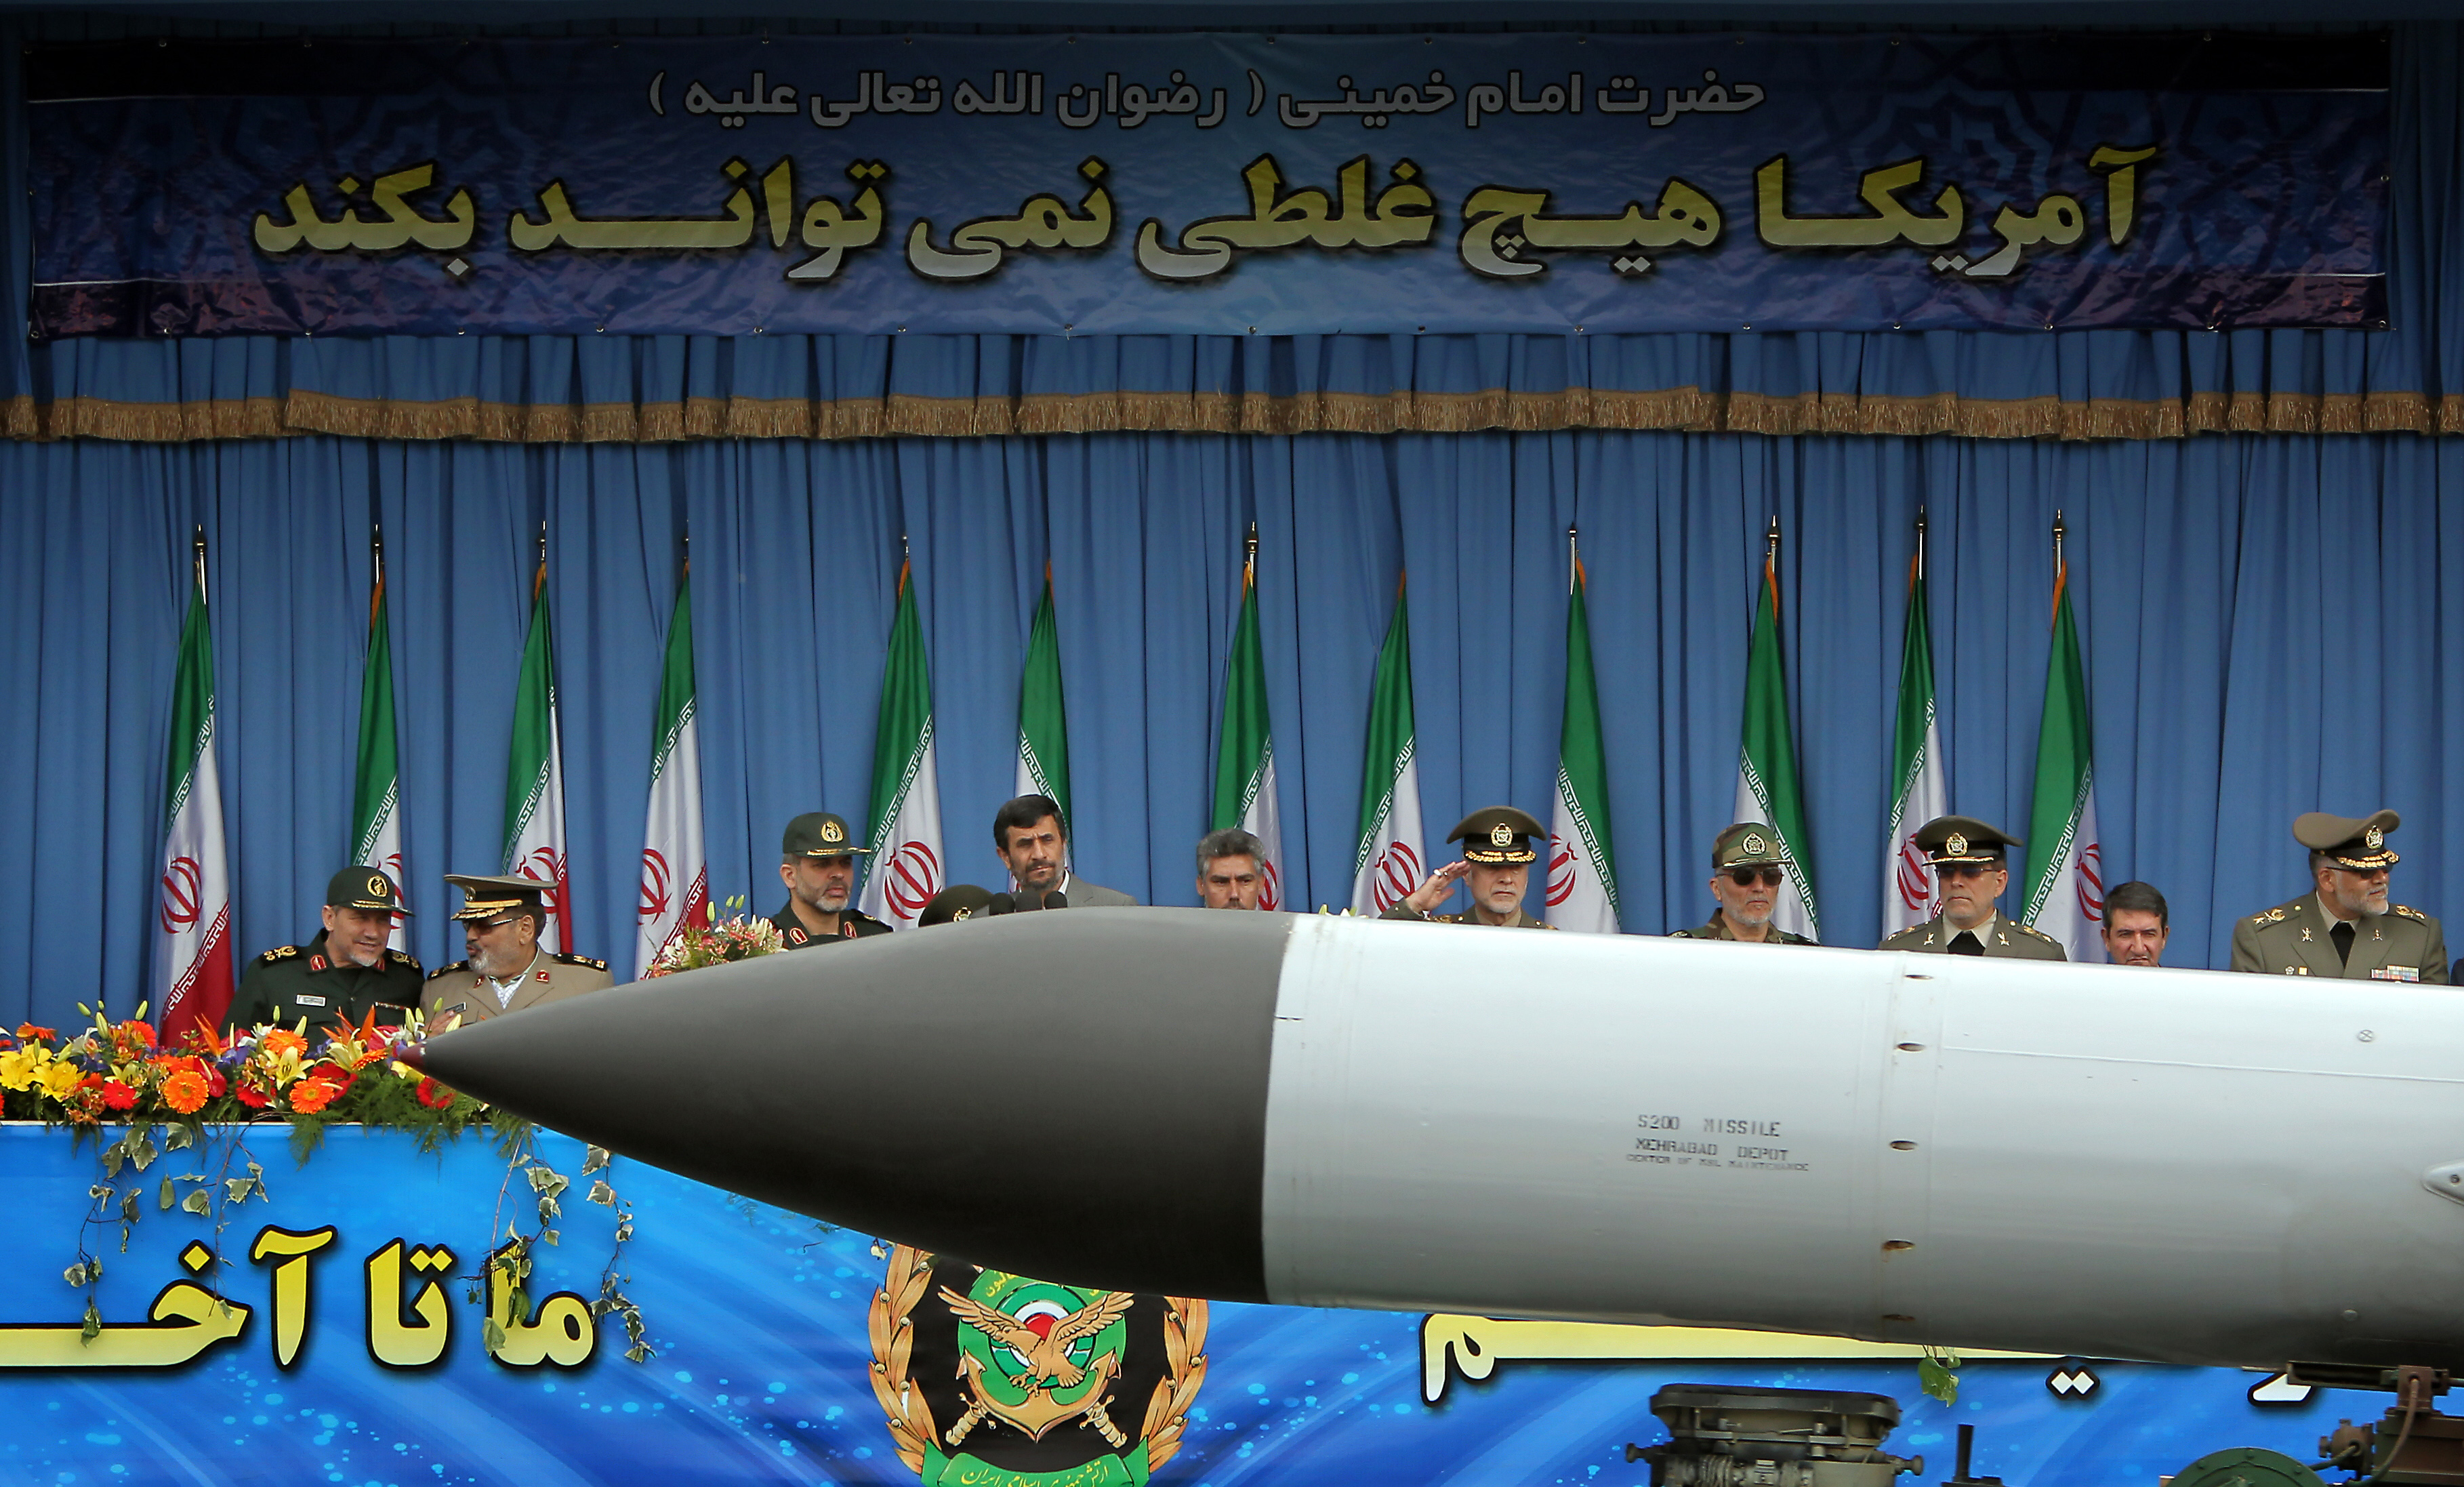 Iran claims it shot down 'Western spy planes'